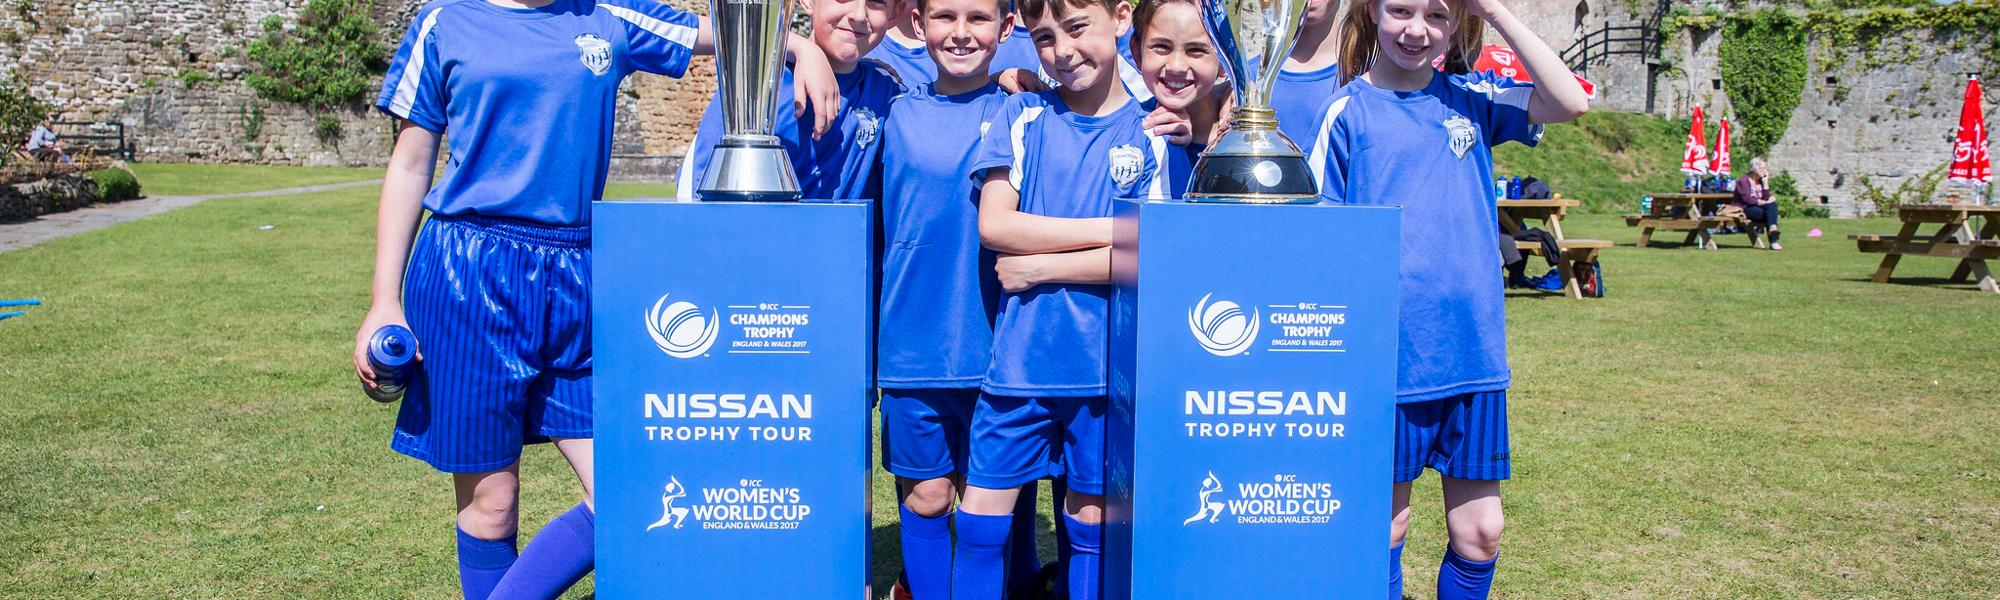 Nissan Trophy Tour takes cricket to the castles of South Wales